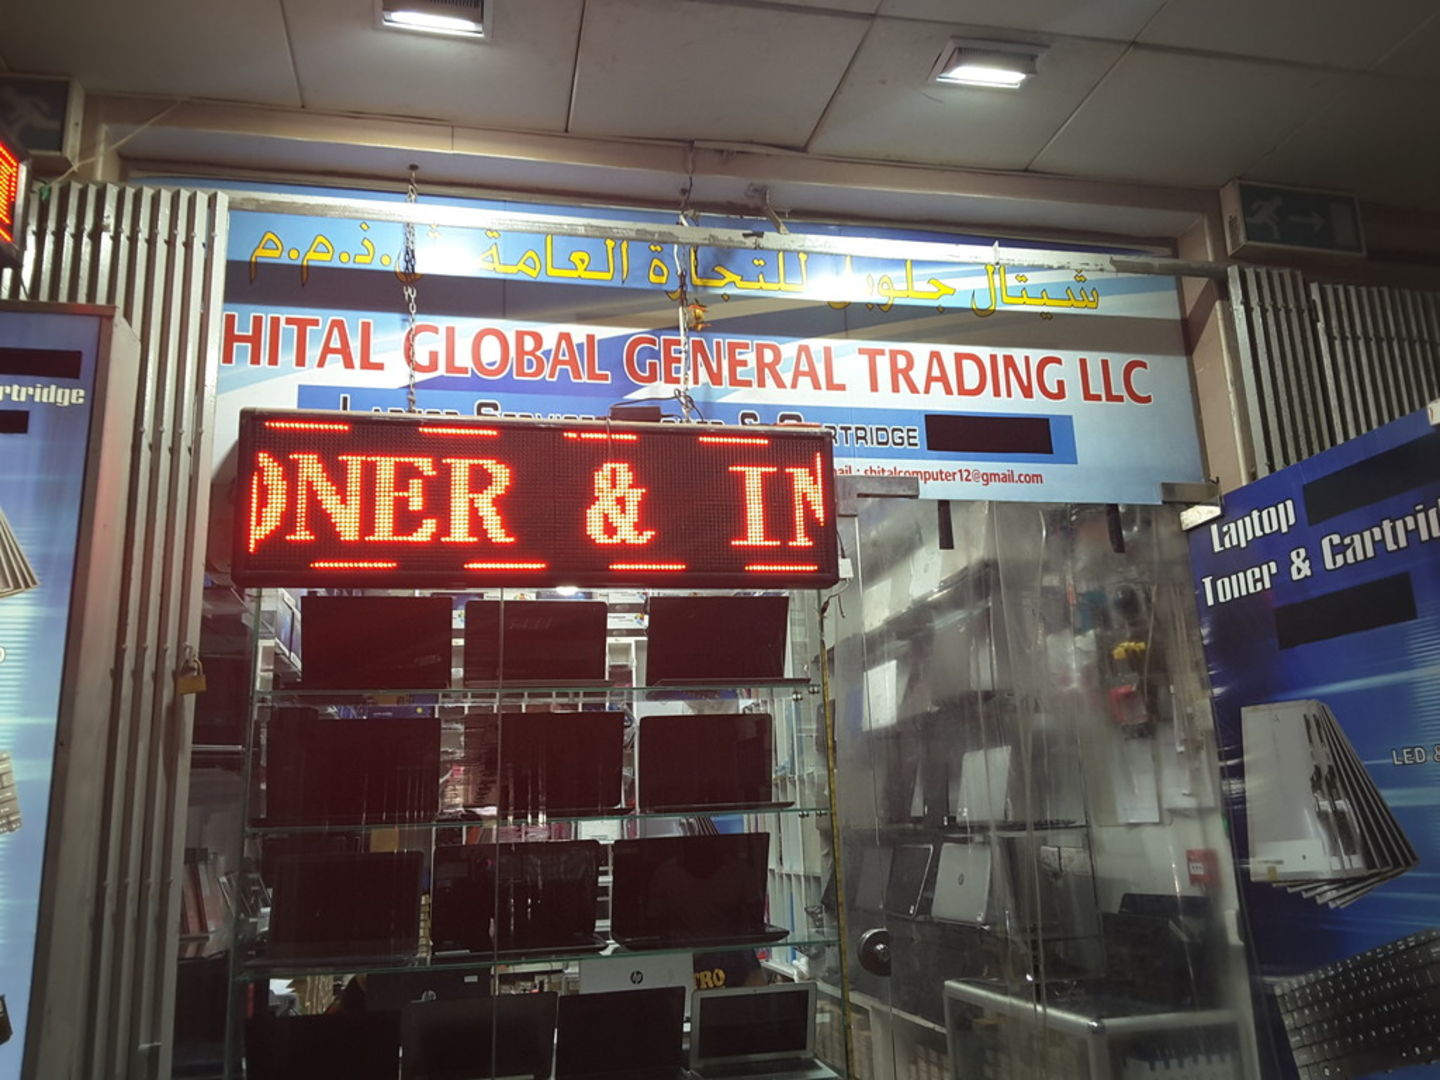 HiDubai-business-shital-global-general-trading-b2b-services-distributors-wholesalers-al-fahidi-al-souq-al-kabeer-dubai-2